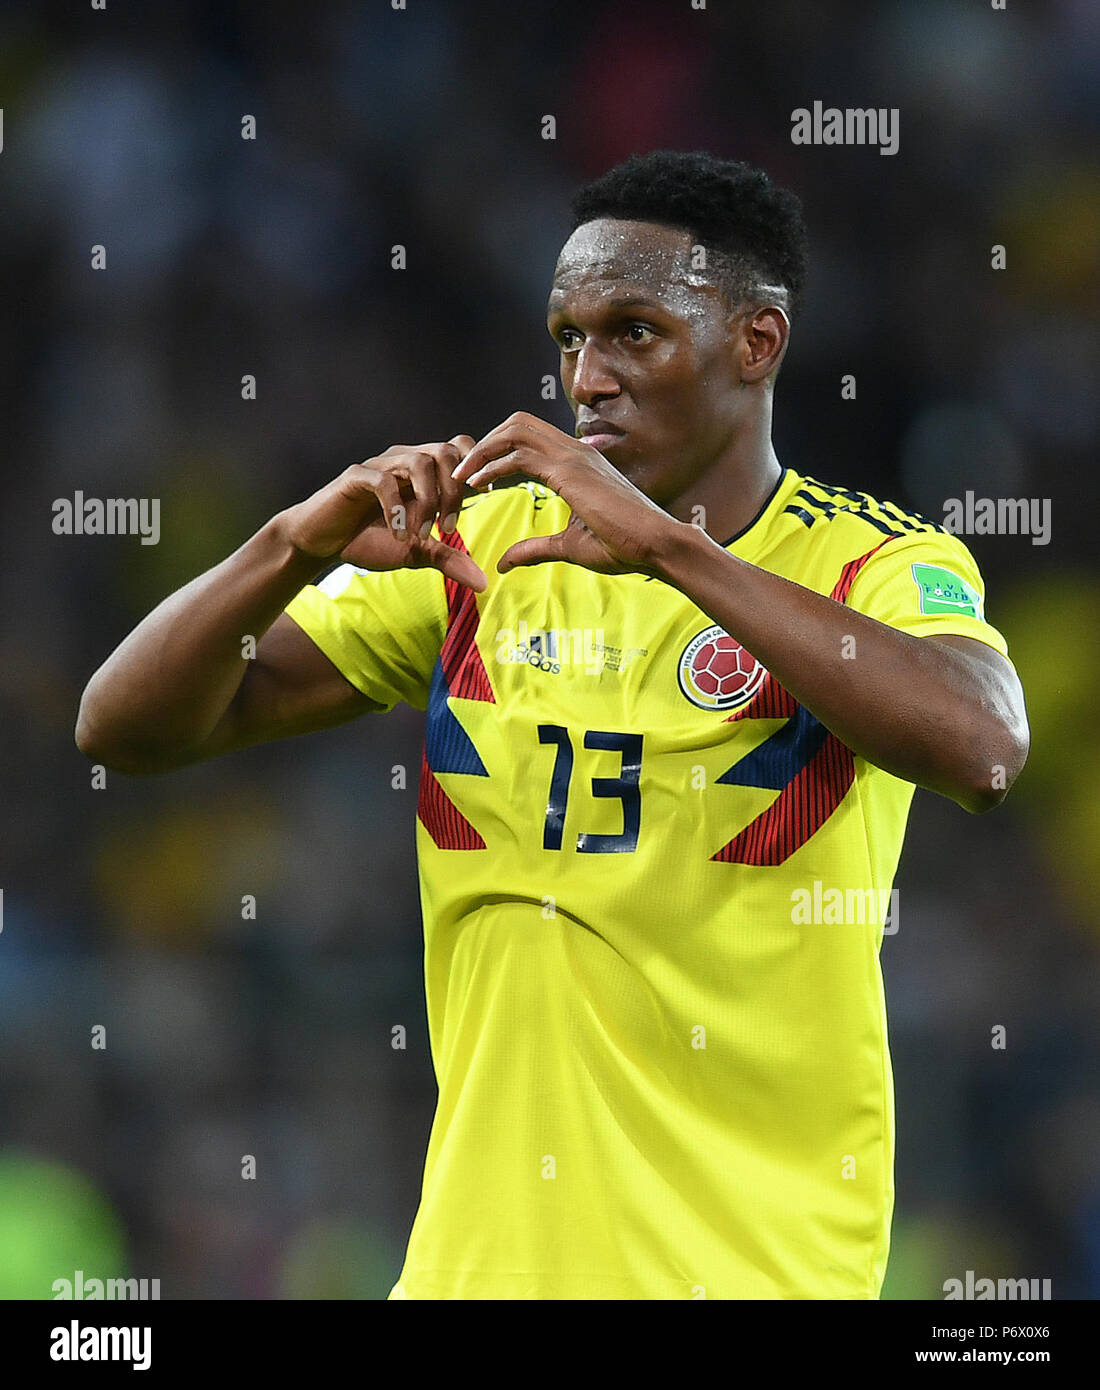 b144eb6f1 Yerry Mina Stock Photos   Yerry Mina Stock Images - Alamy